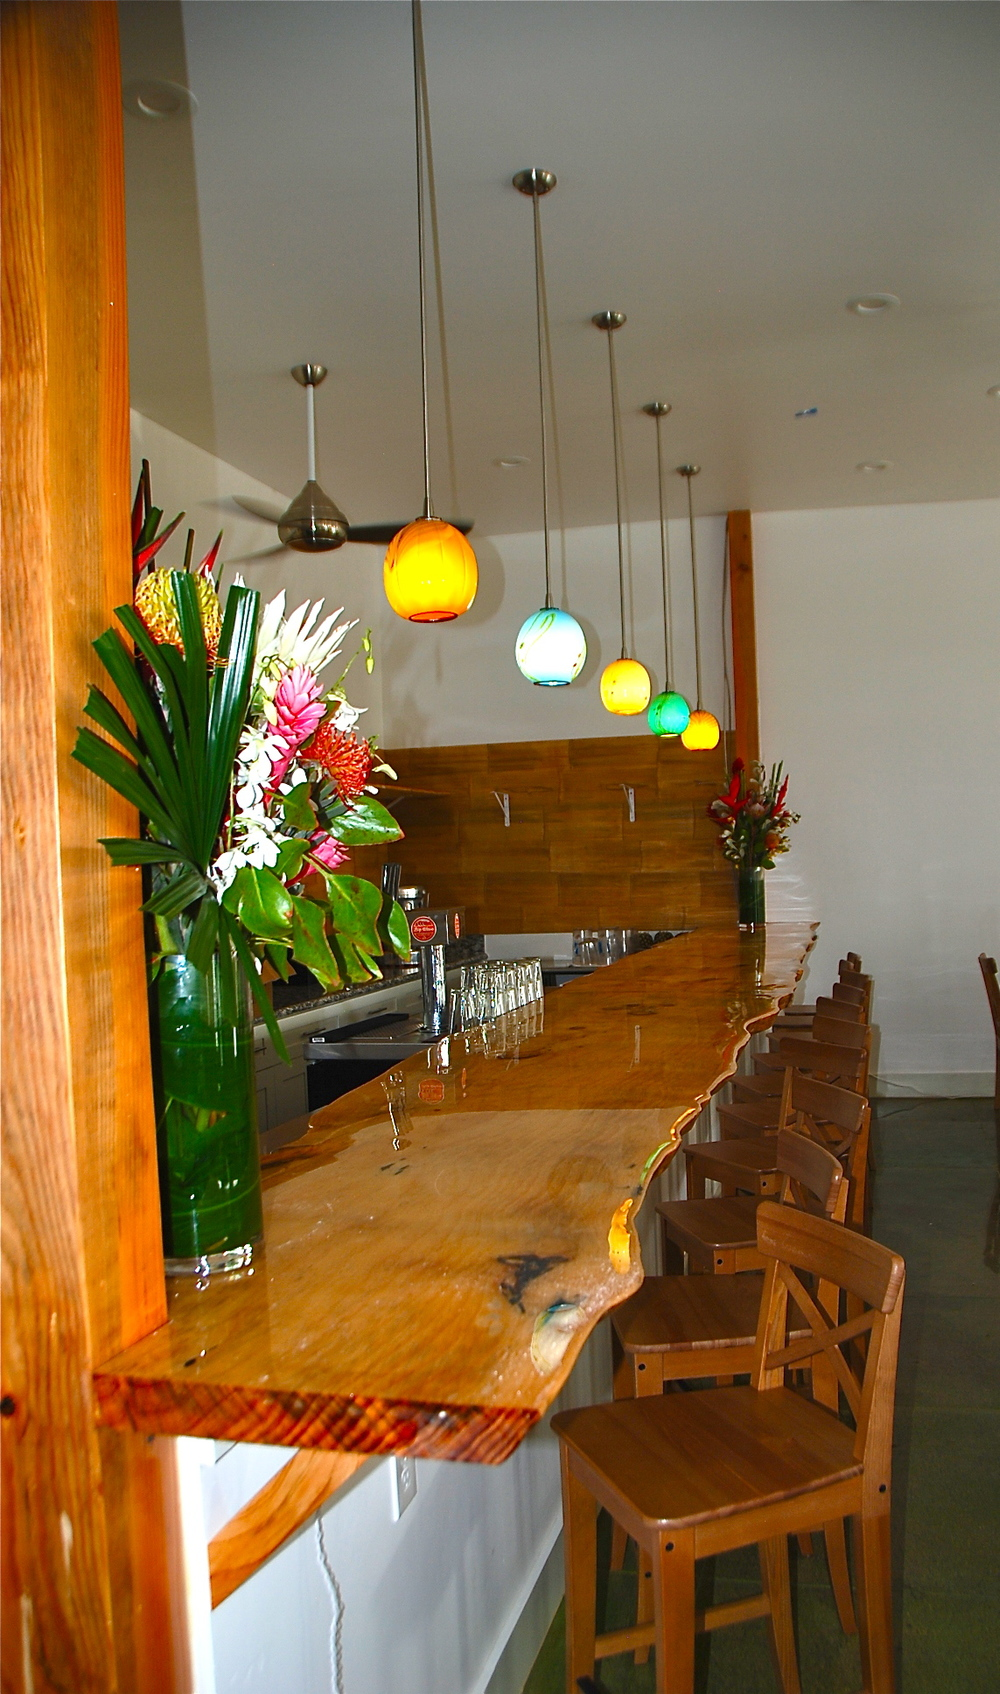 Downtown Paia,  Maui  a new Raw Food Bar with lighting by Strini Art Glass. 2014